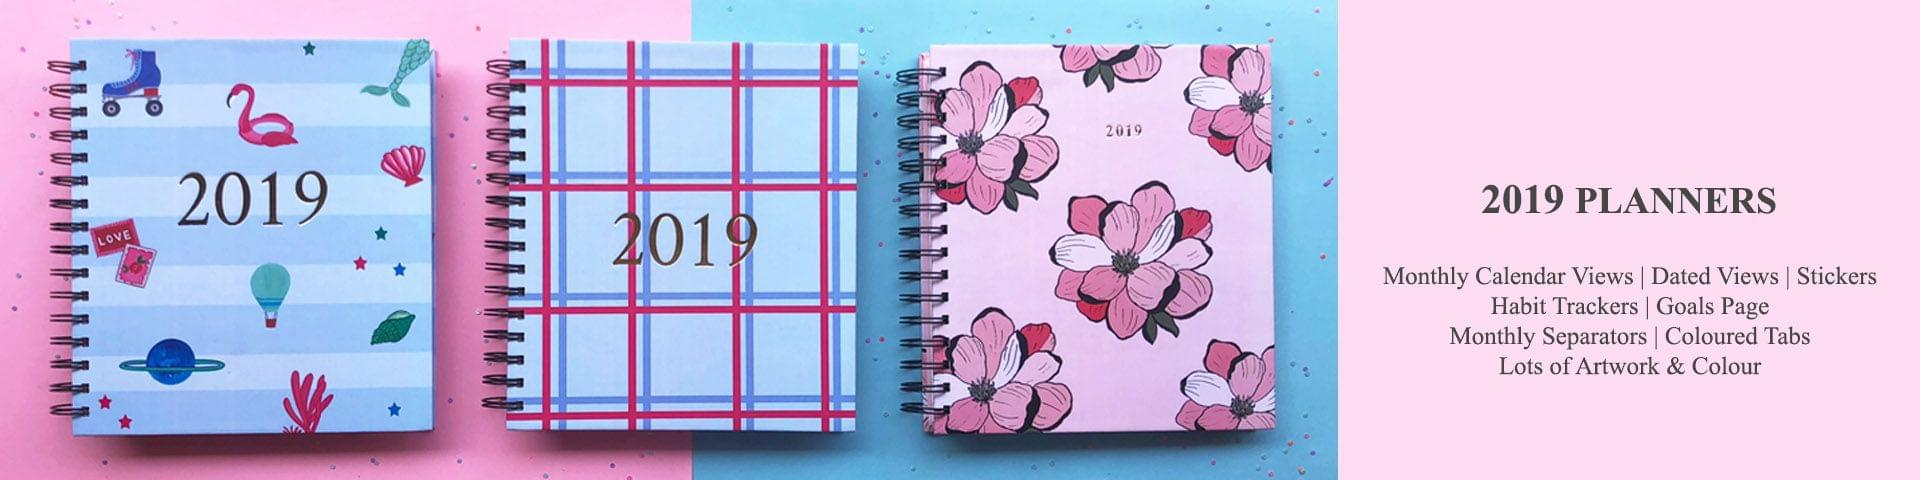 2019 Planners